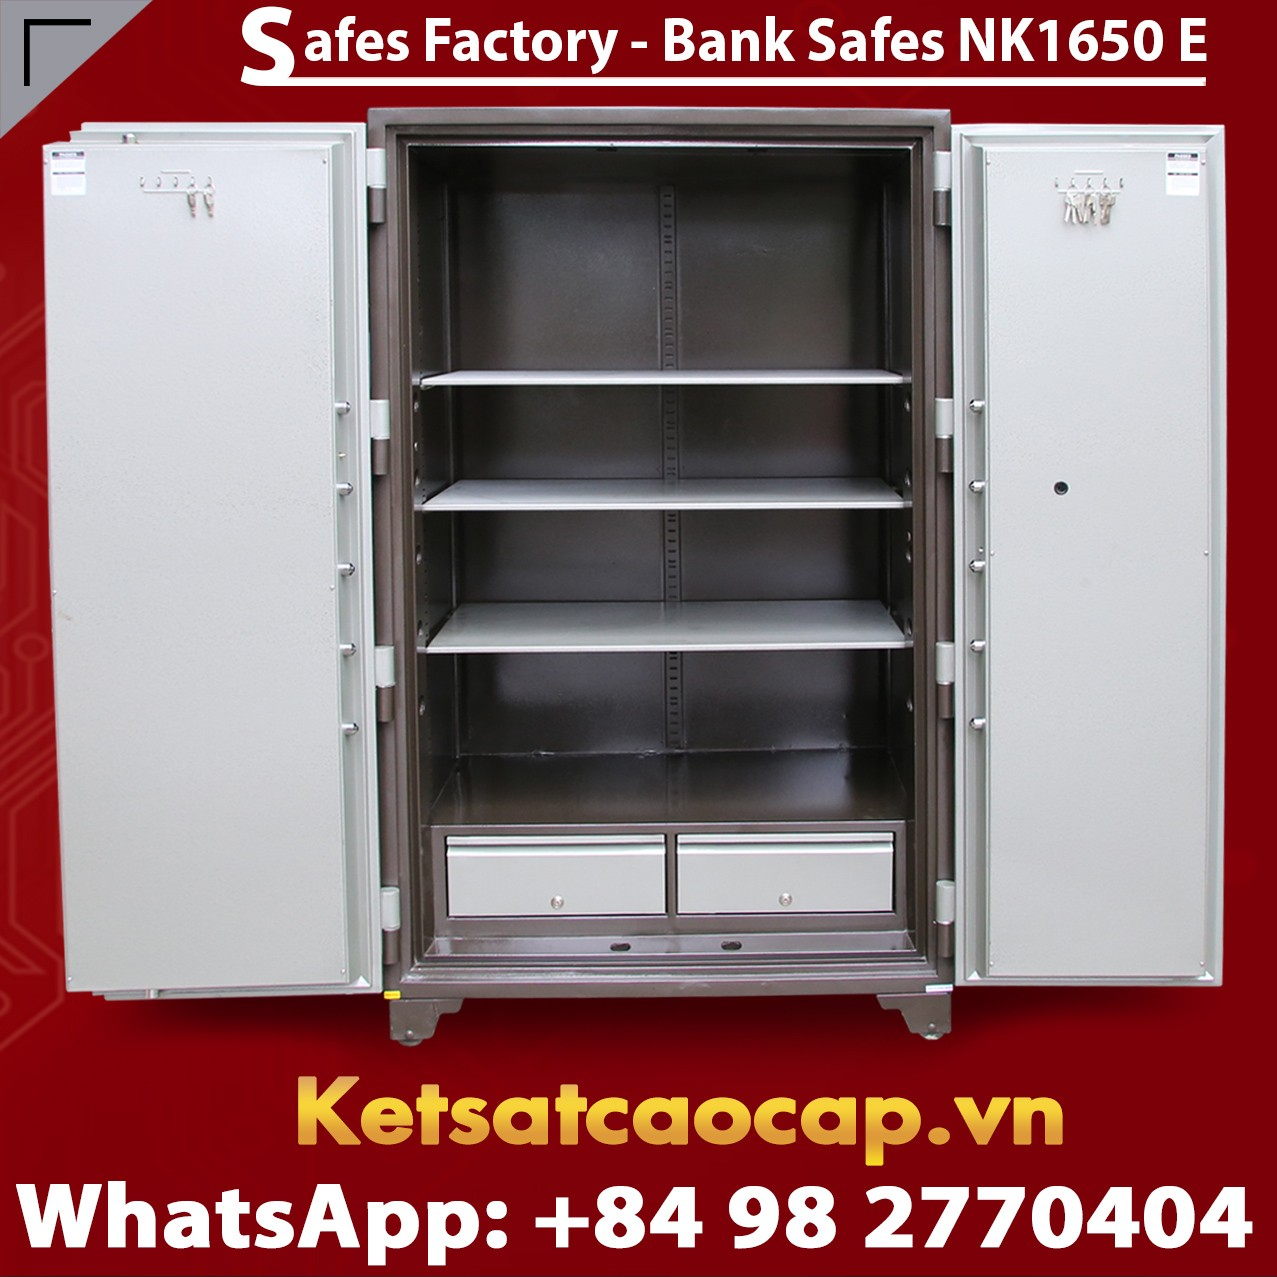 Bank Safe NK 1650 E Two Doors Best Selling Security Large Safe For Bank